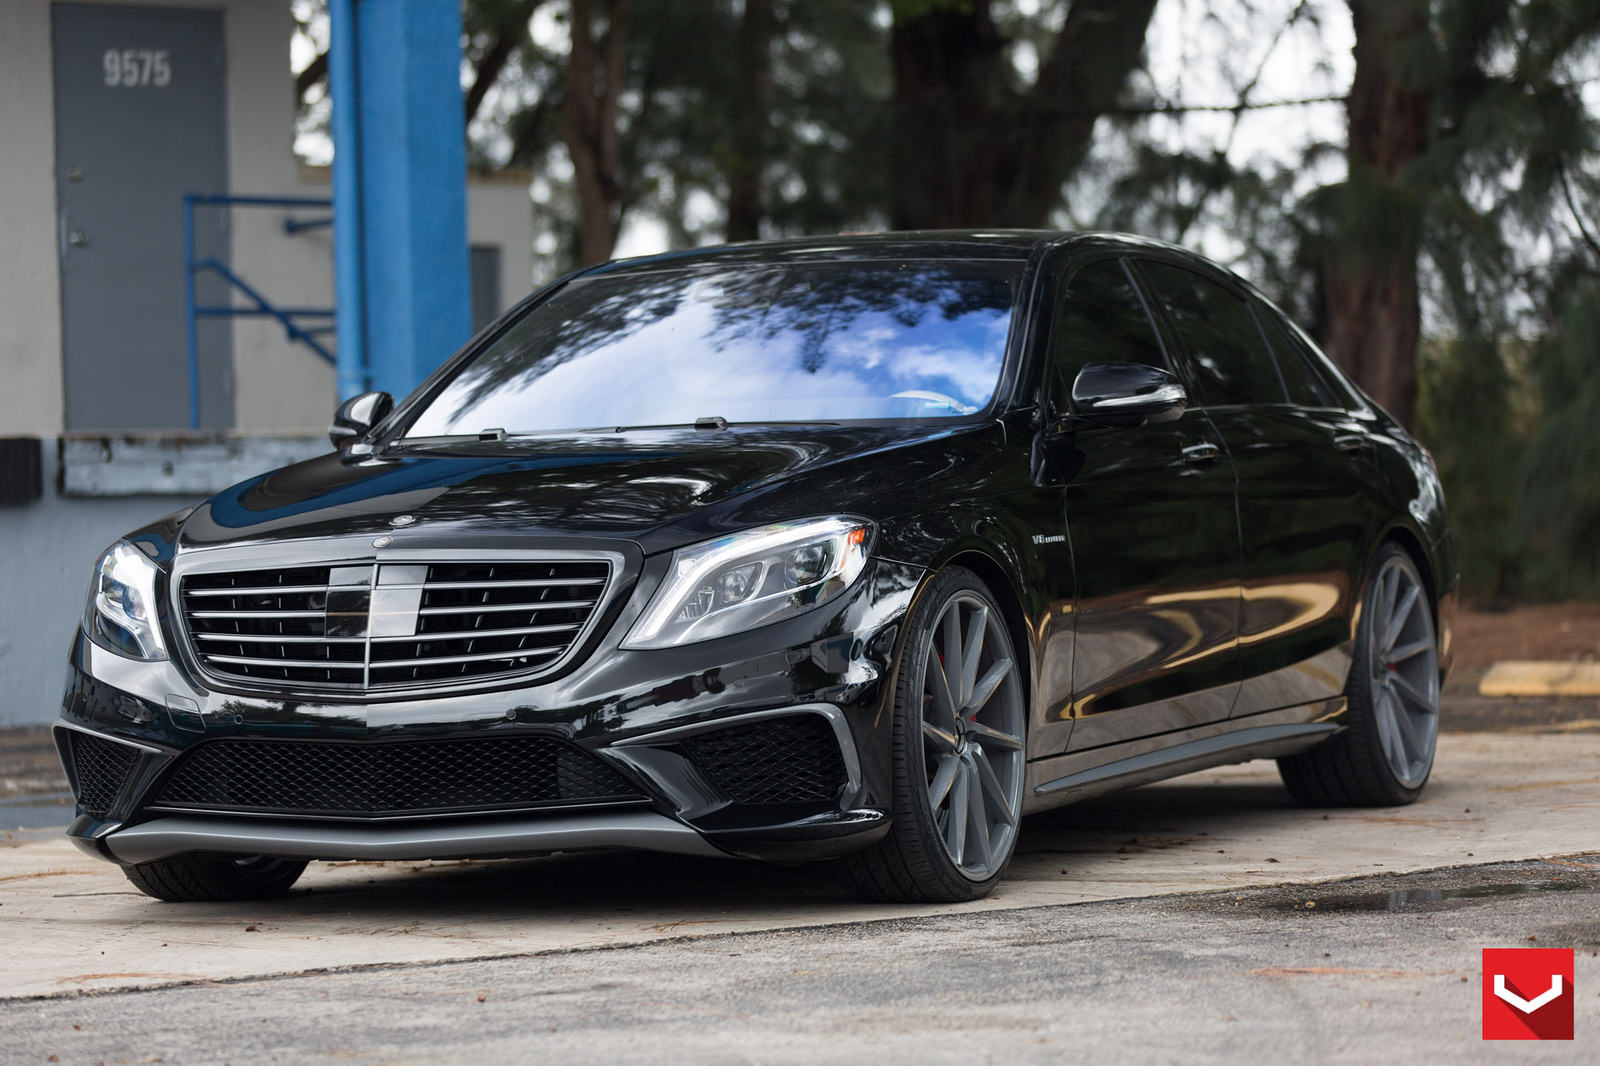 Mercedes benz w222 s63 amg on vossen cvt wheels benztuning for Mercedes benz wheels rims